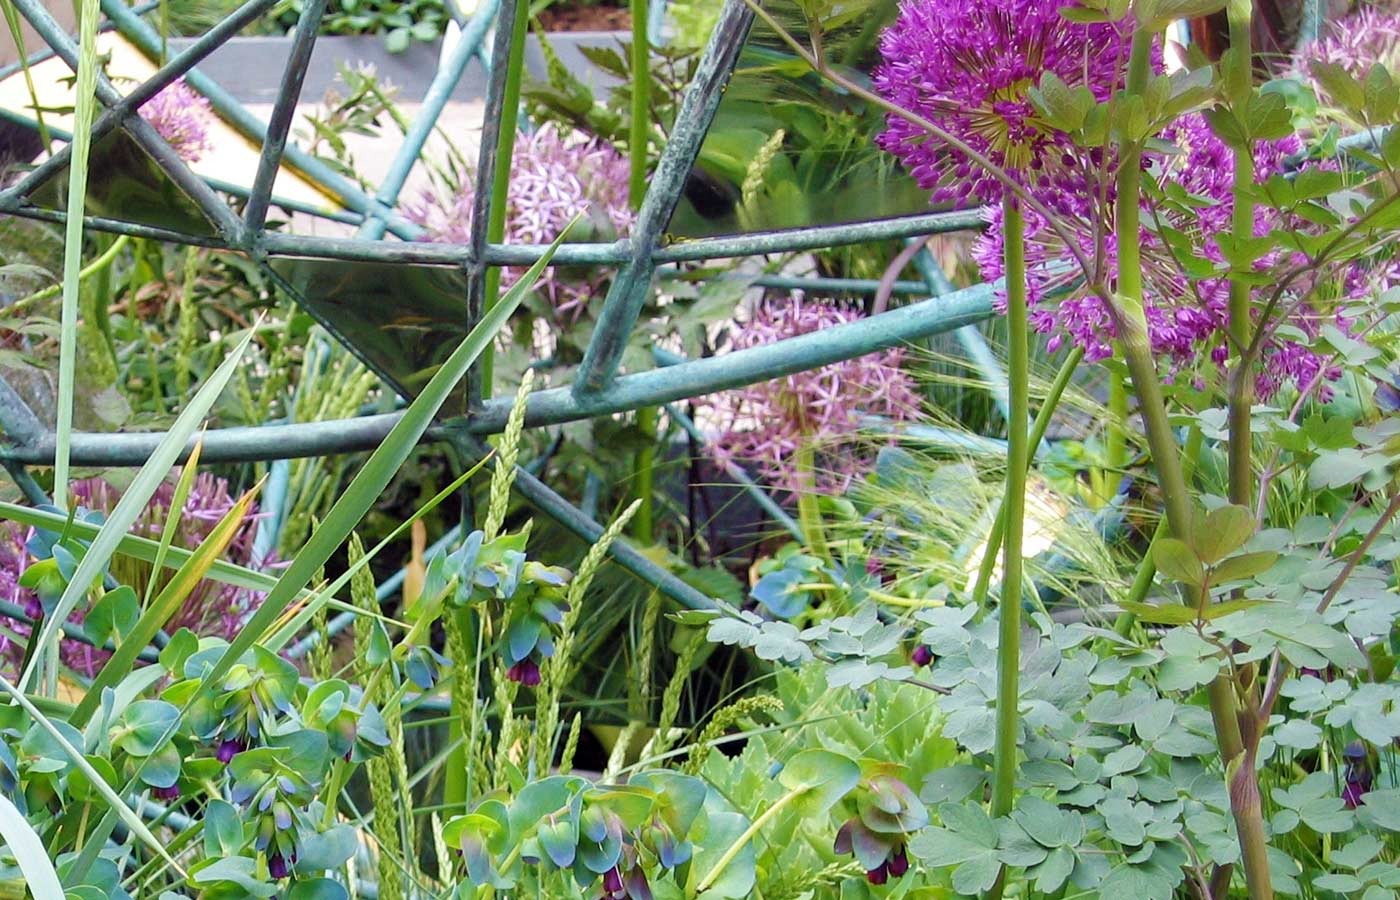 Cerinthe thalictrum alliums grasses intertwine with the Matrix garden sculpture